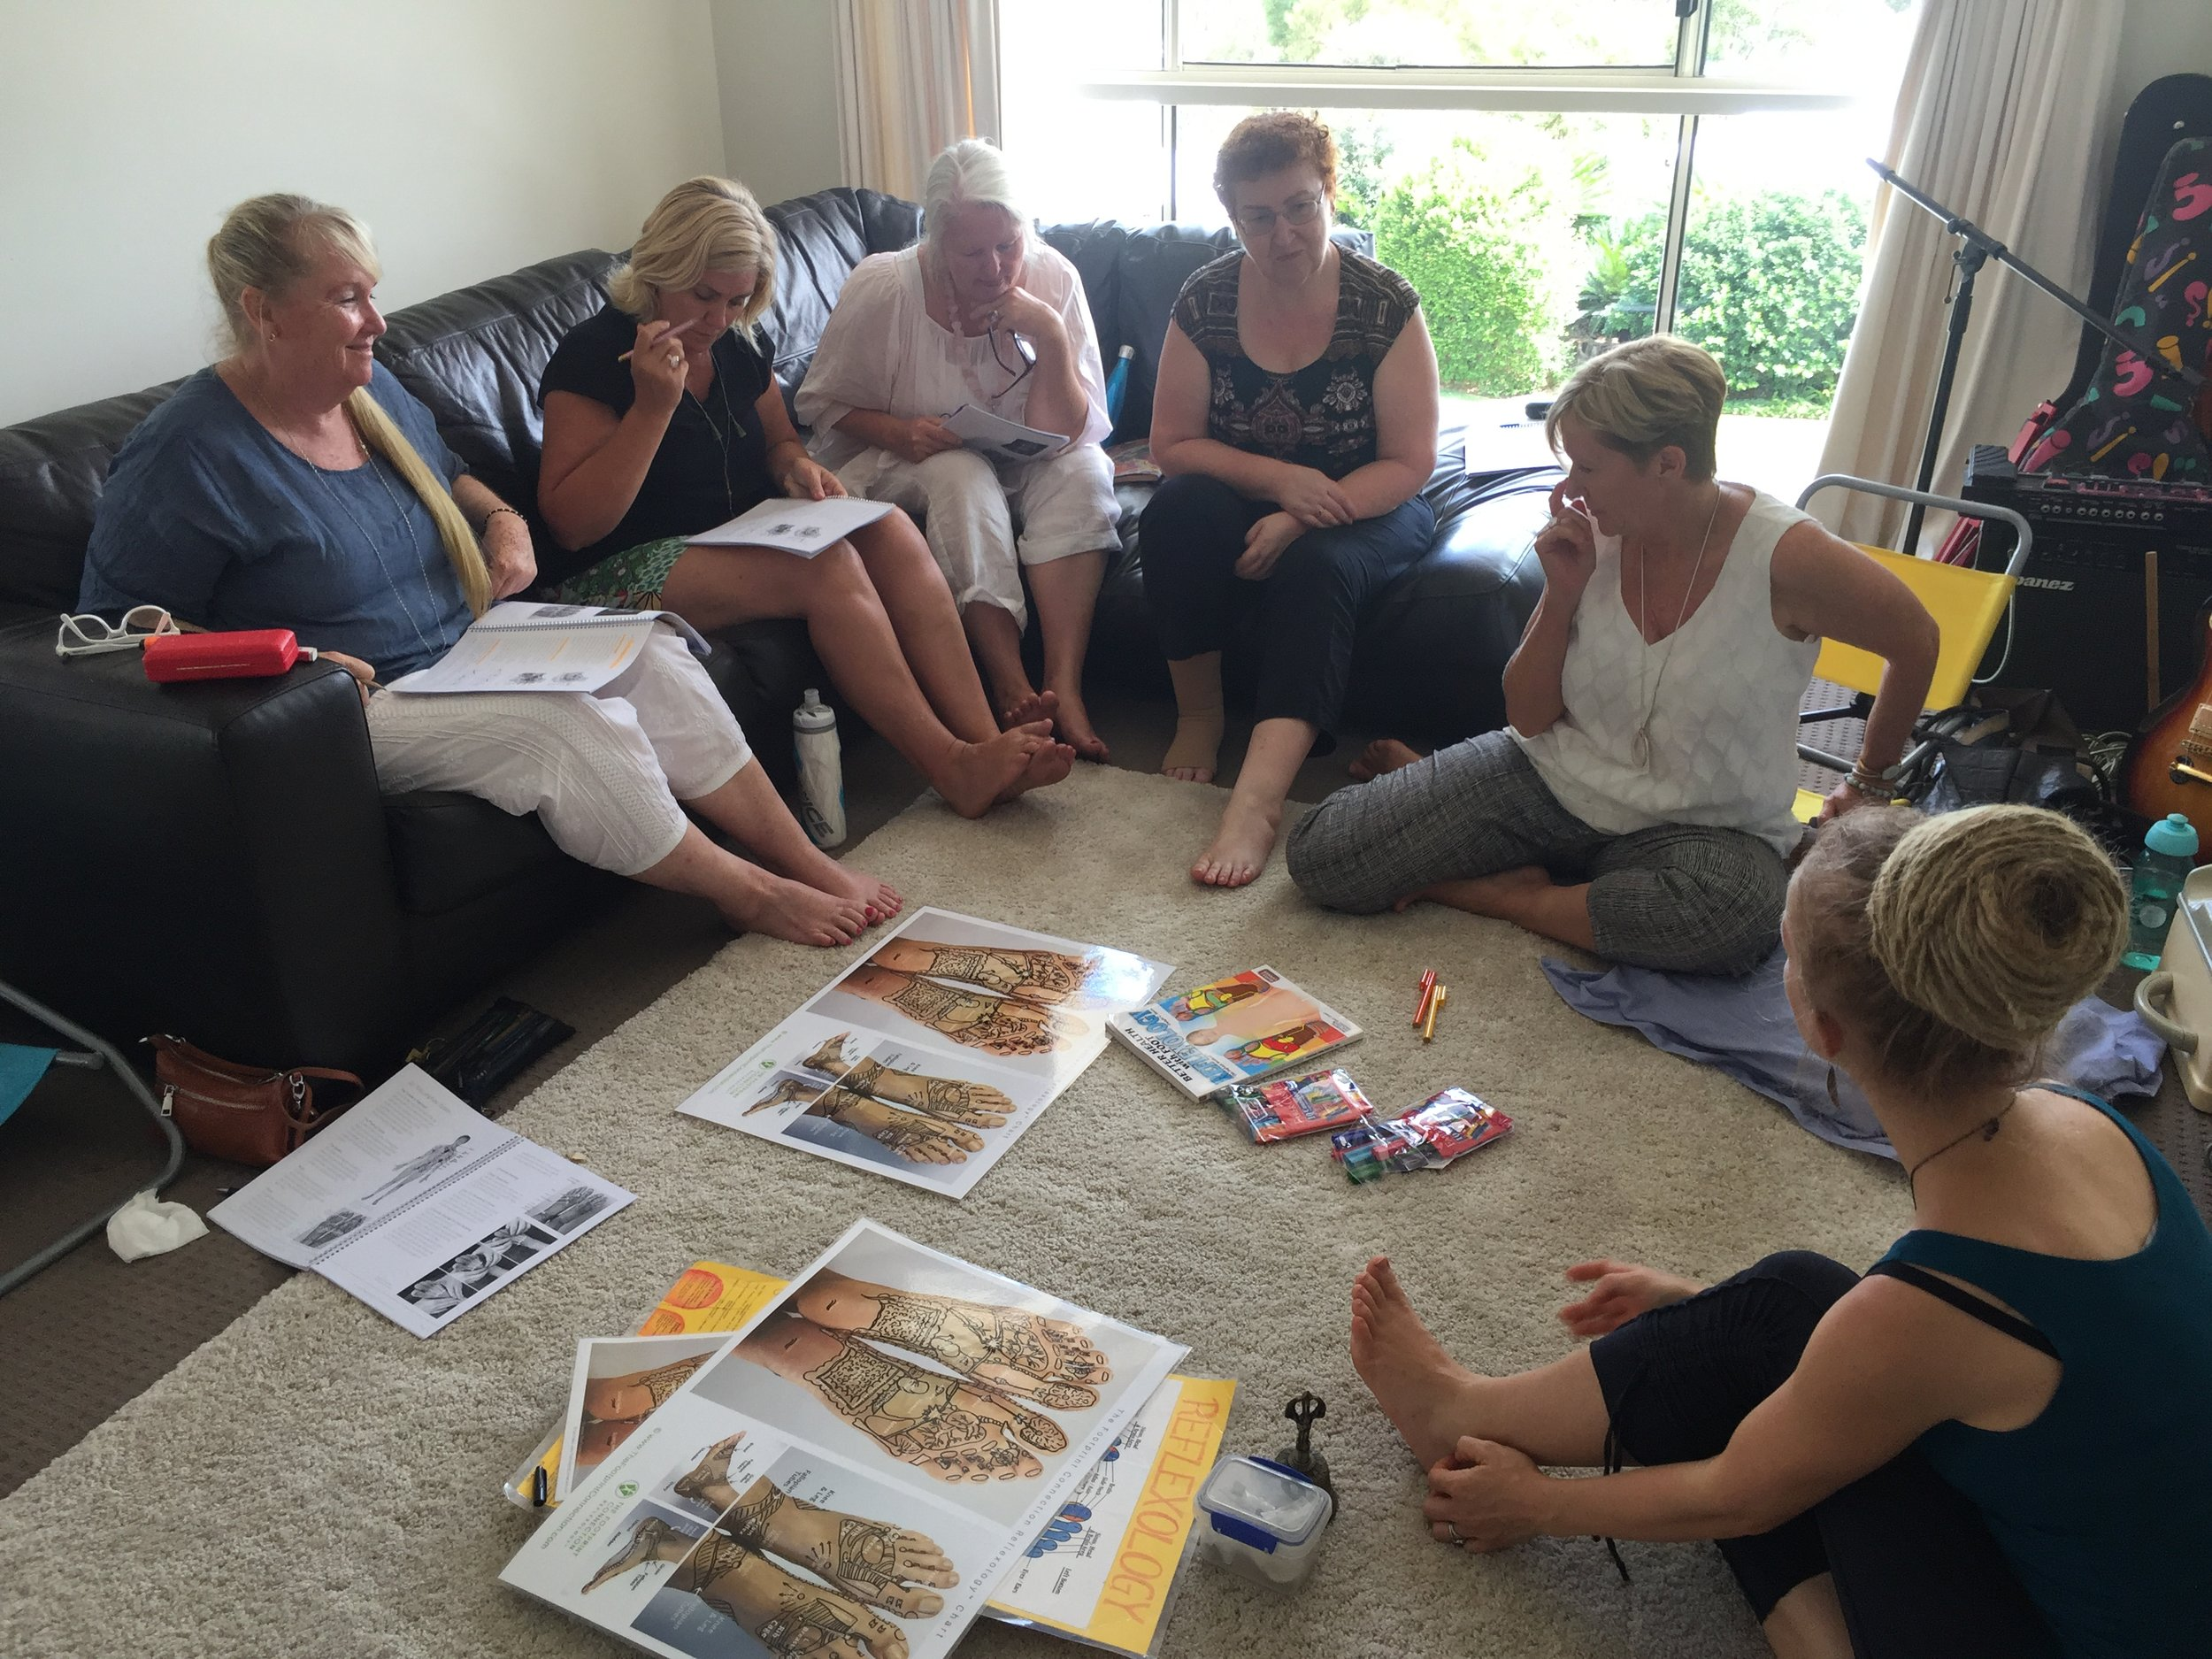 Reflexology Workshop interactions